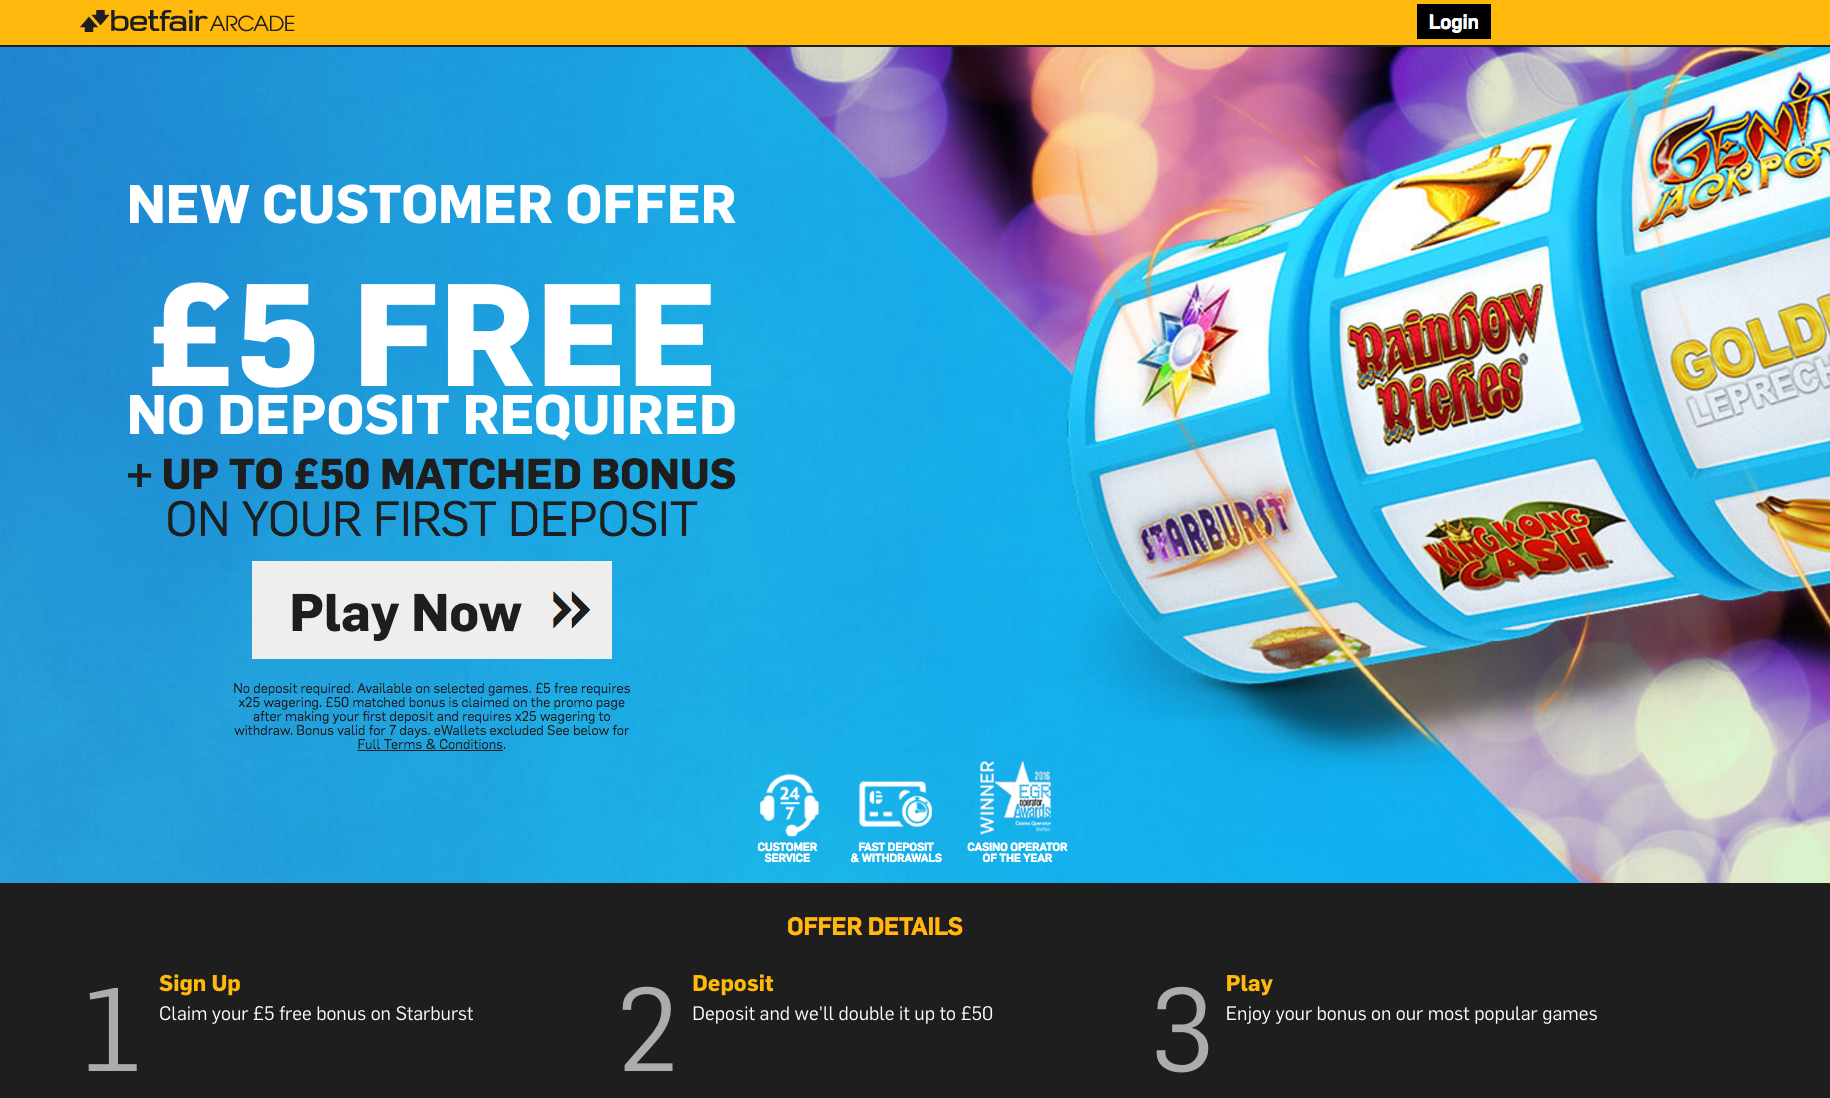 Visa Online Casinos Guide From Casino.com Ireland